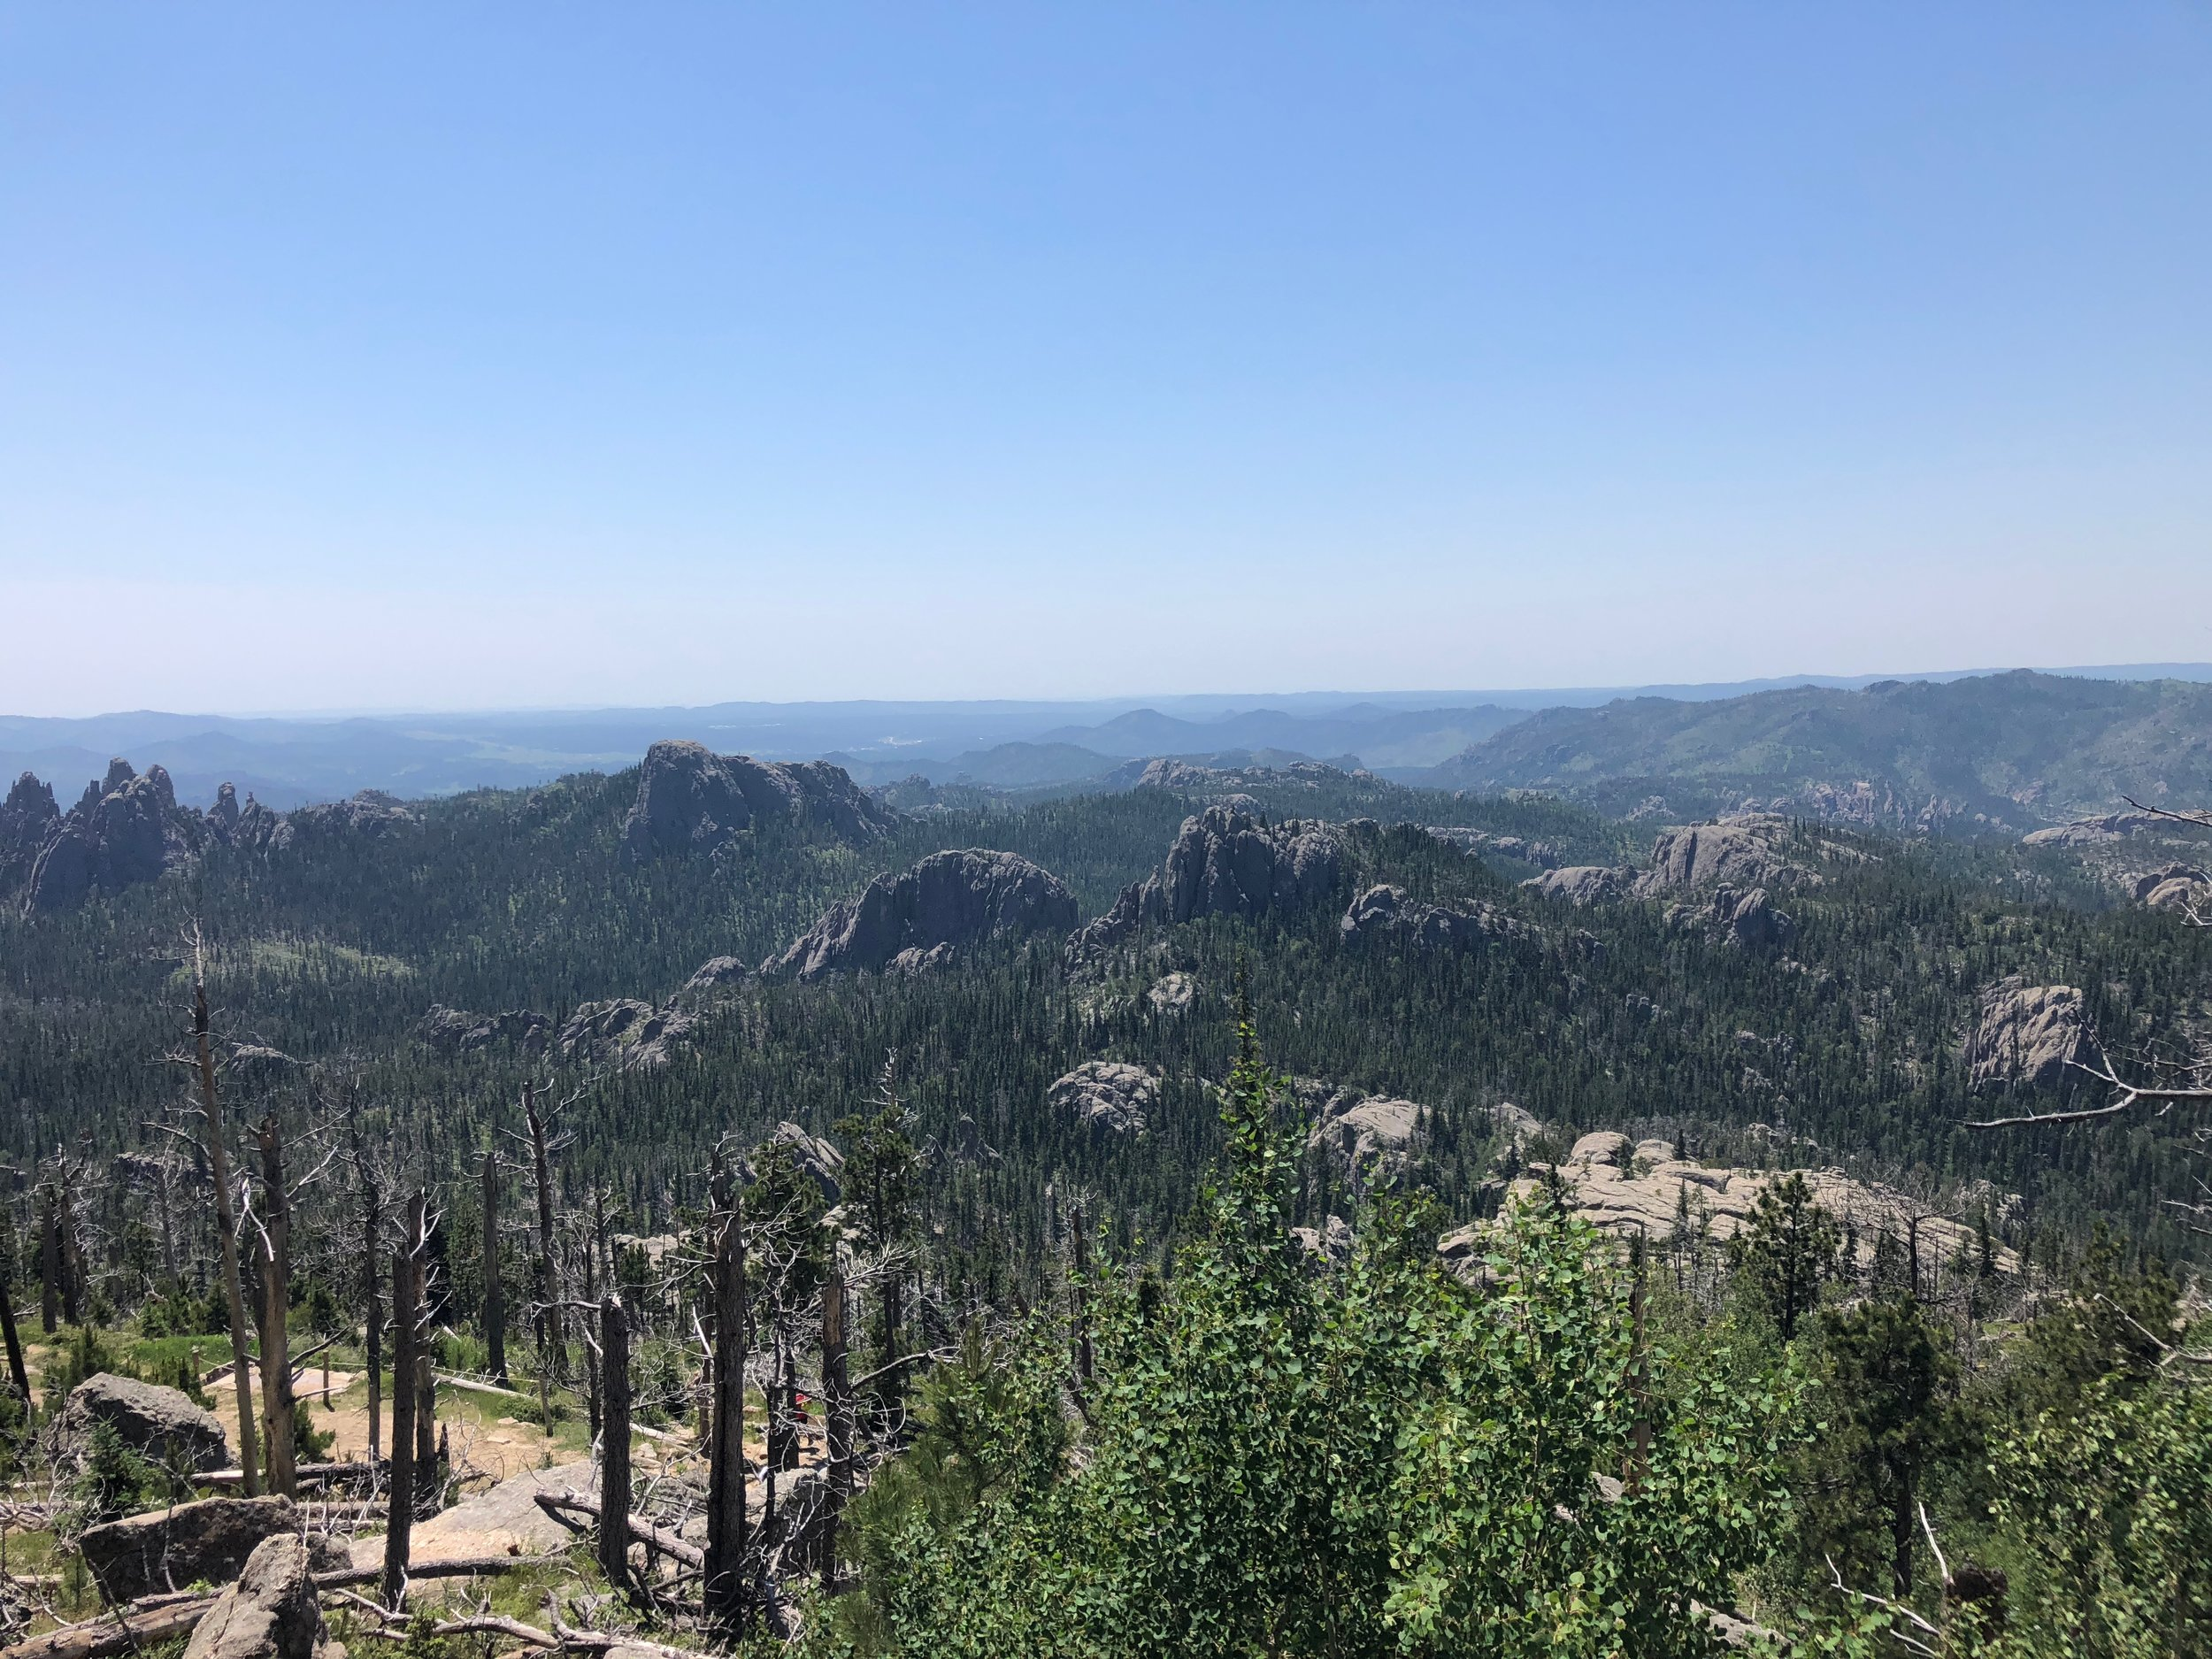 A view from the Black Elk Trail